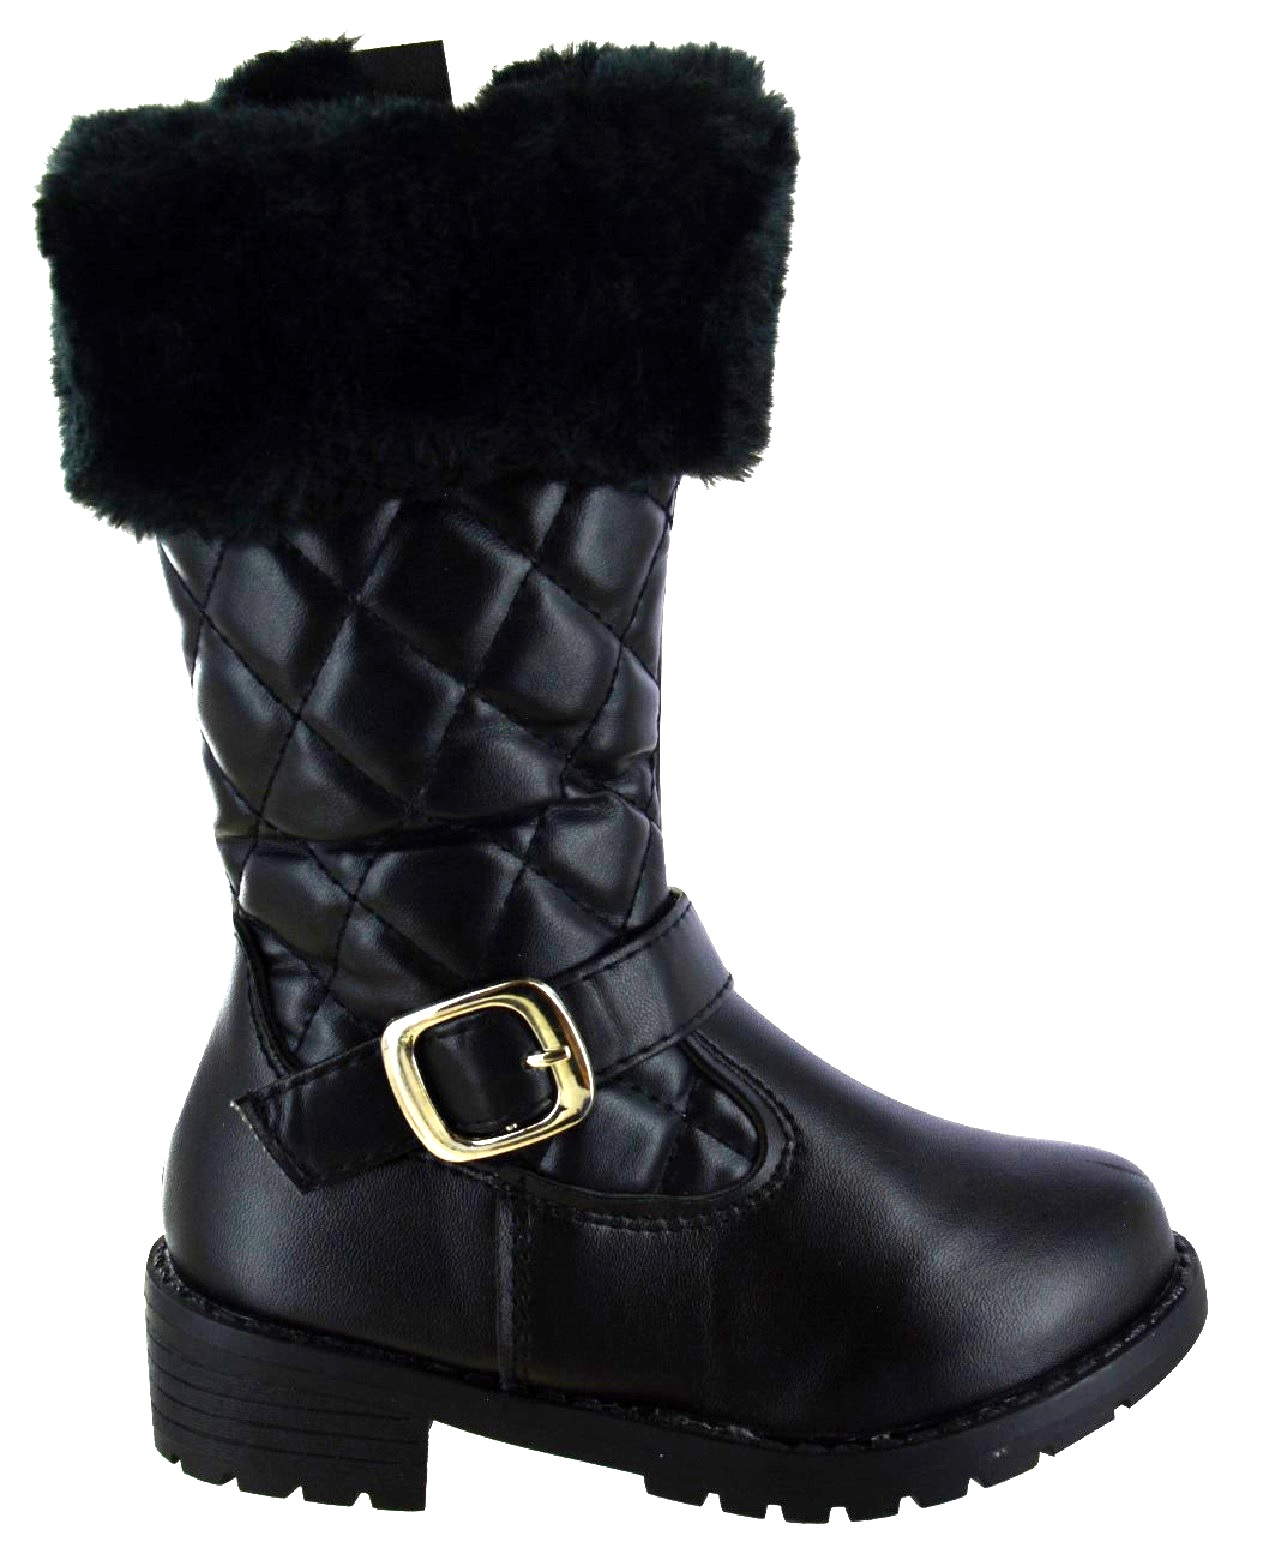 New Girls Kids Infants Faux Fur Lined Quilted Warm Winter Boots Mid Calf UK